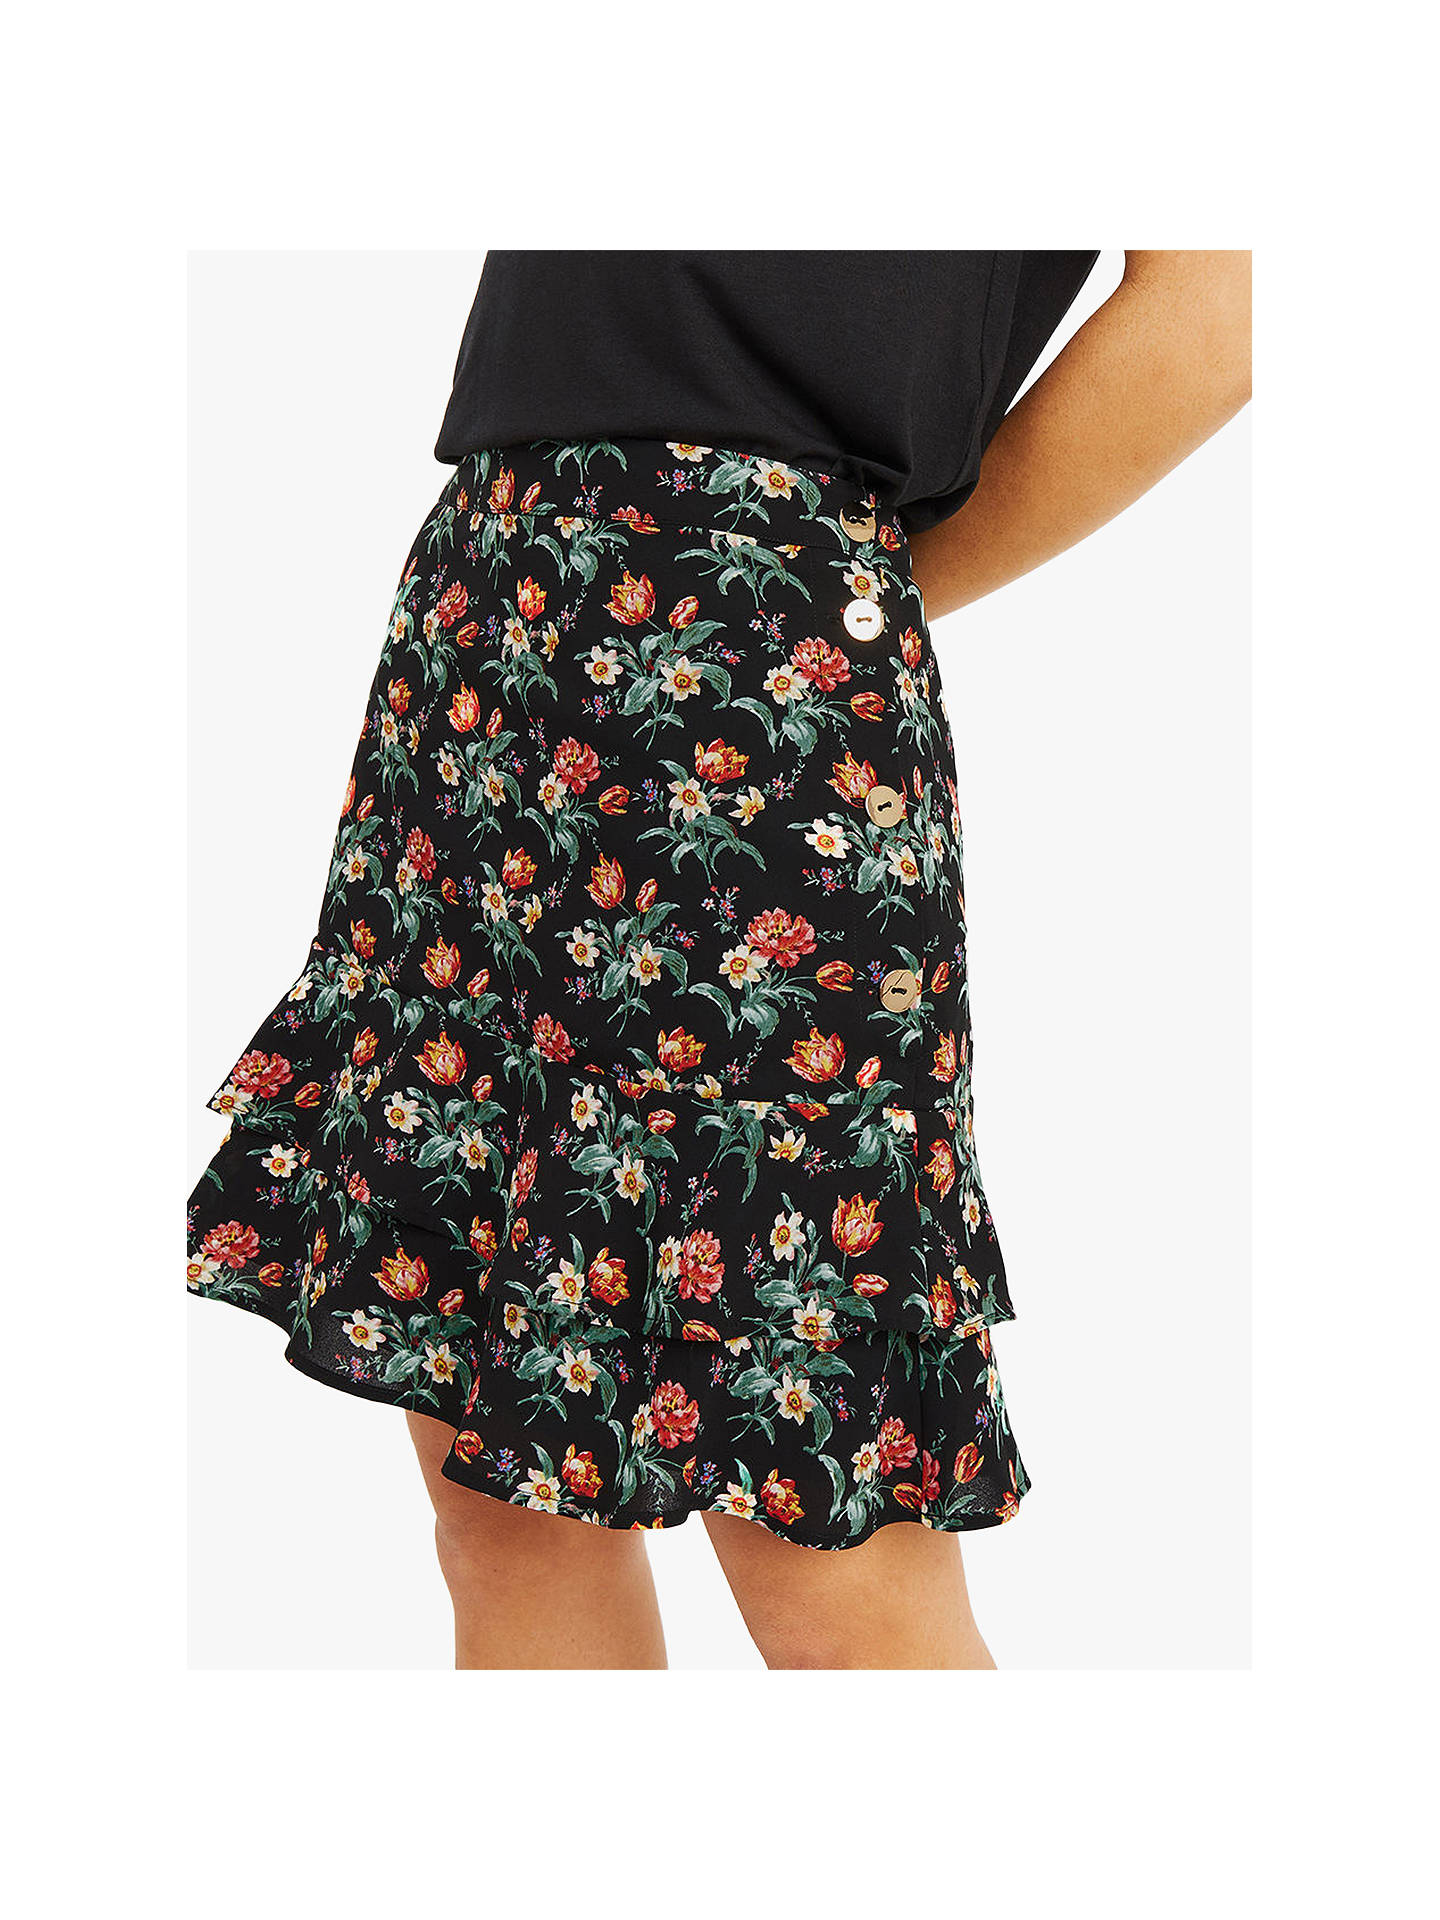 45f3fb5f9f8 Buy Oasis Willow Tiered Skirt